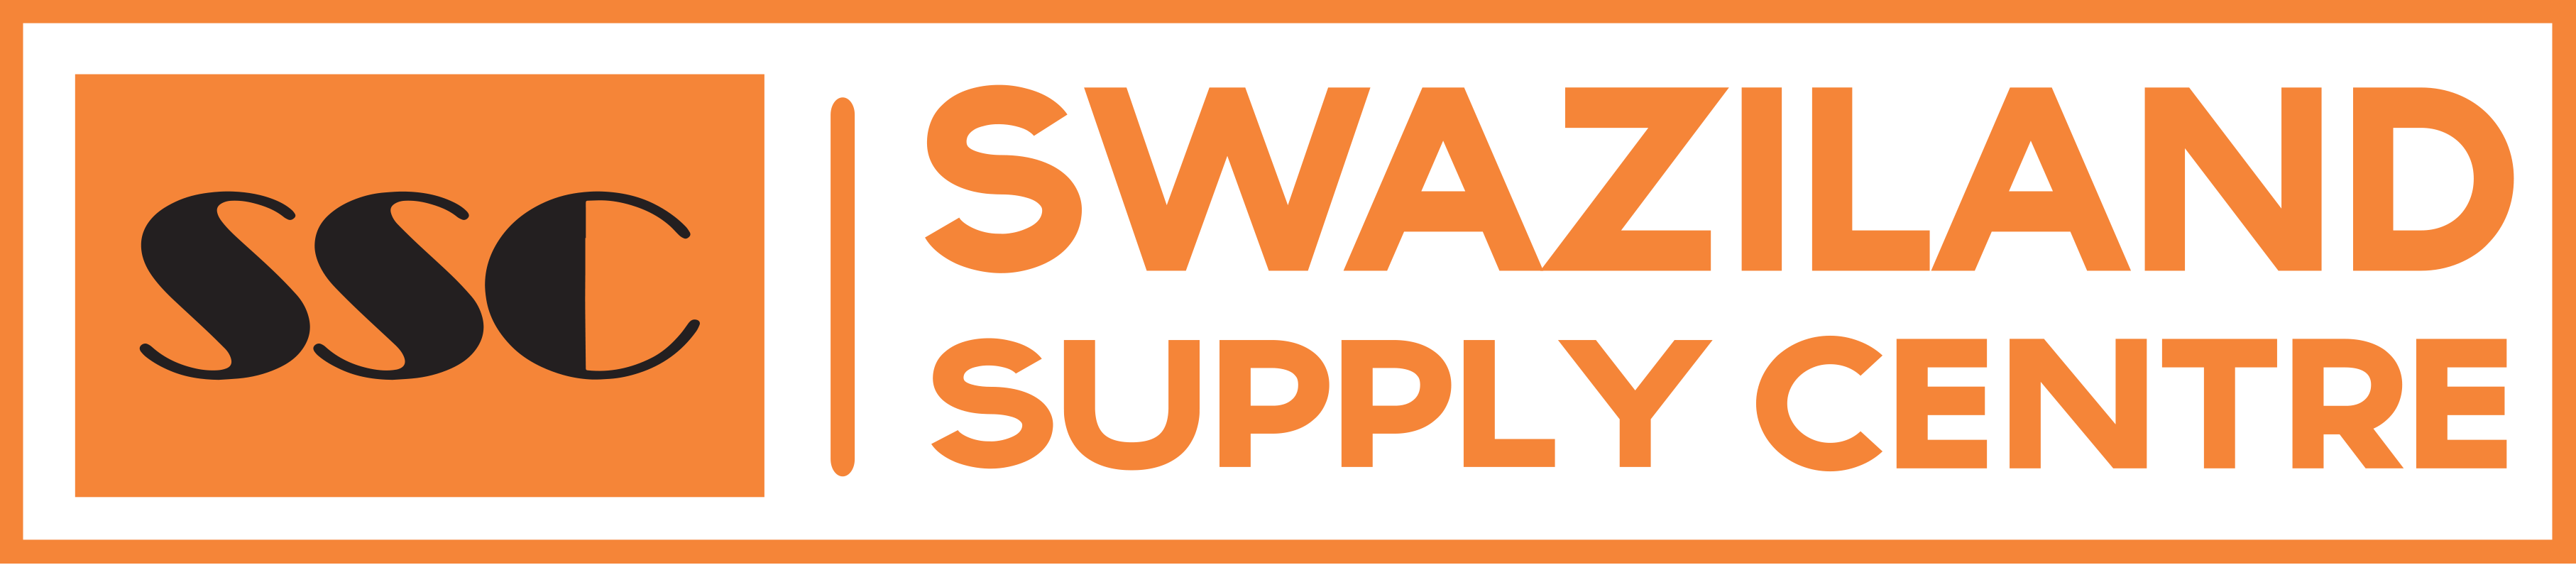 Swaziland Supply Centre-The Big Brand Store